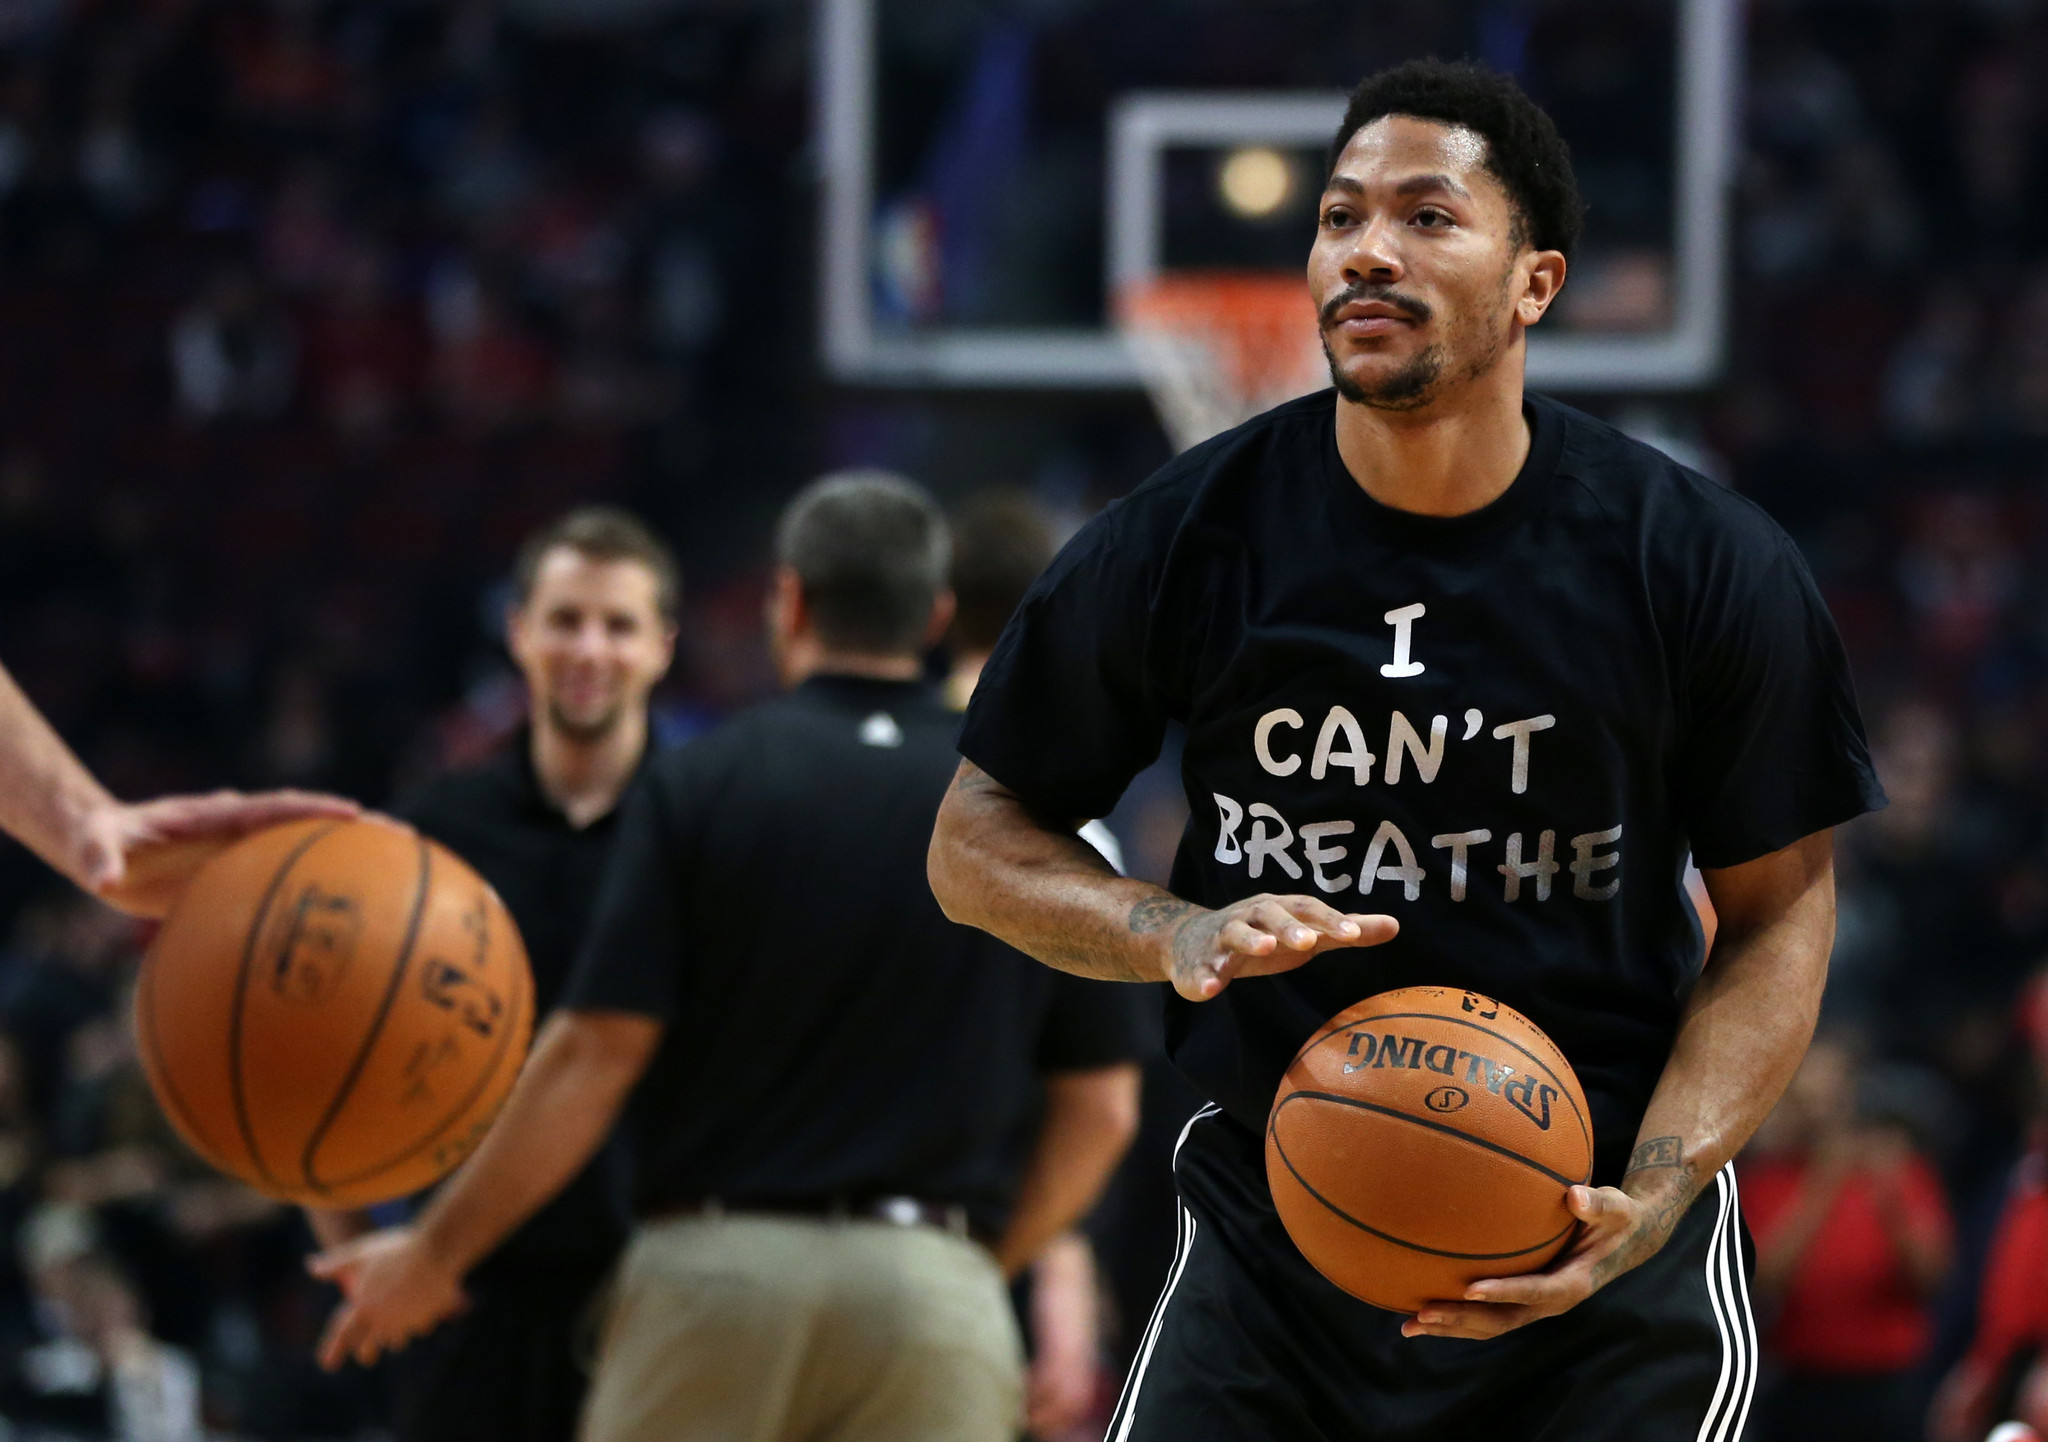 fb5edafd6772 Derrick Rose s message comes through loud and clear this time - Chicago  Tribune